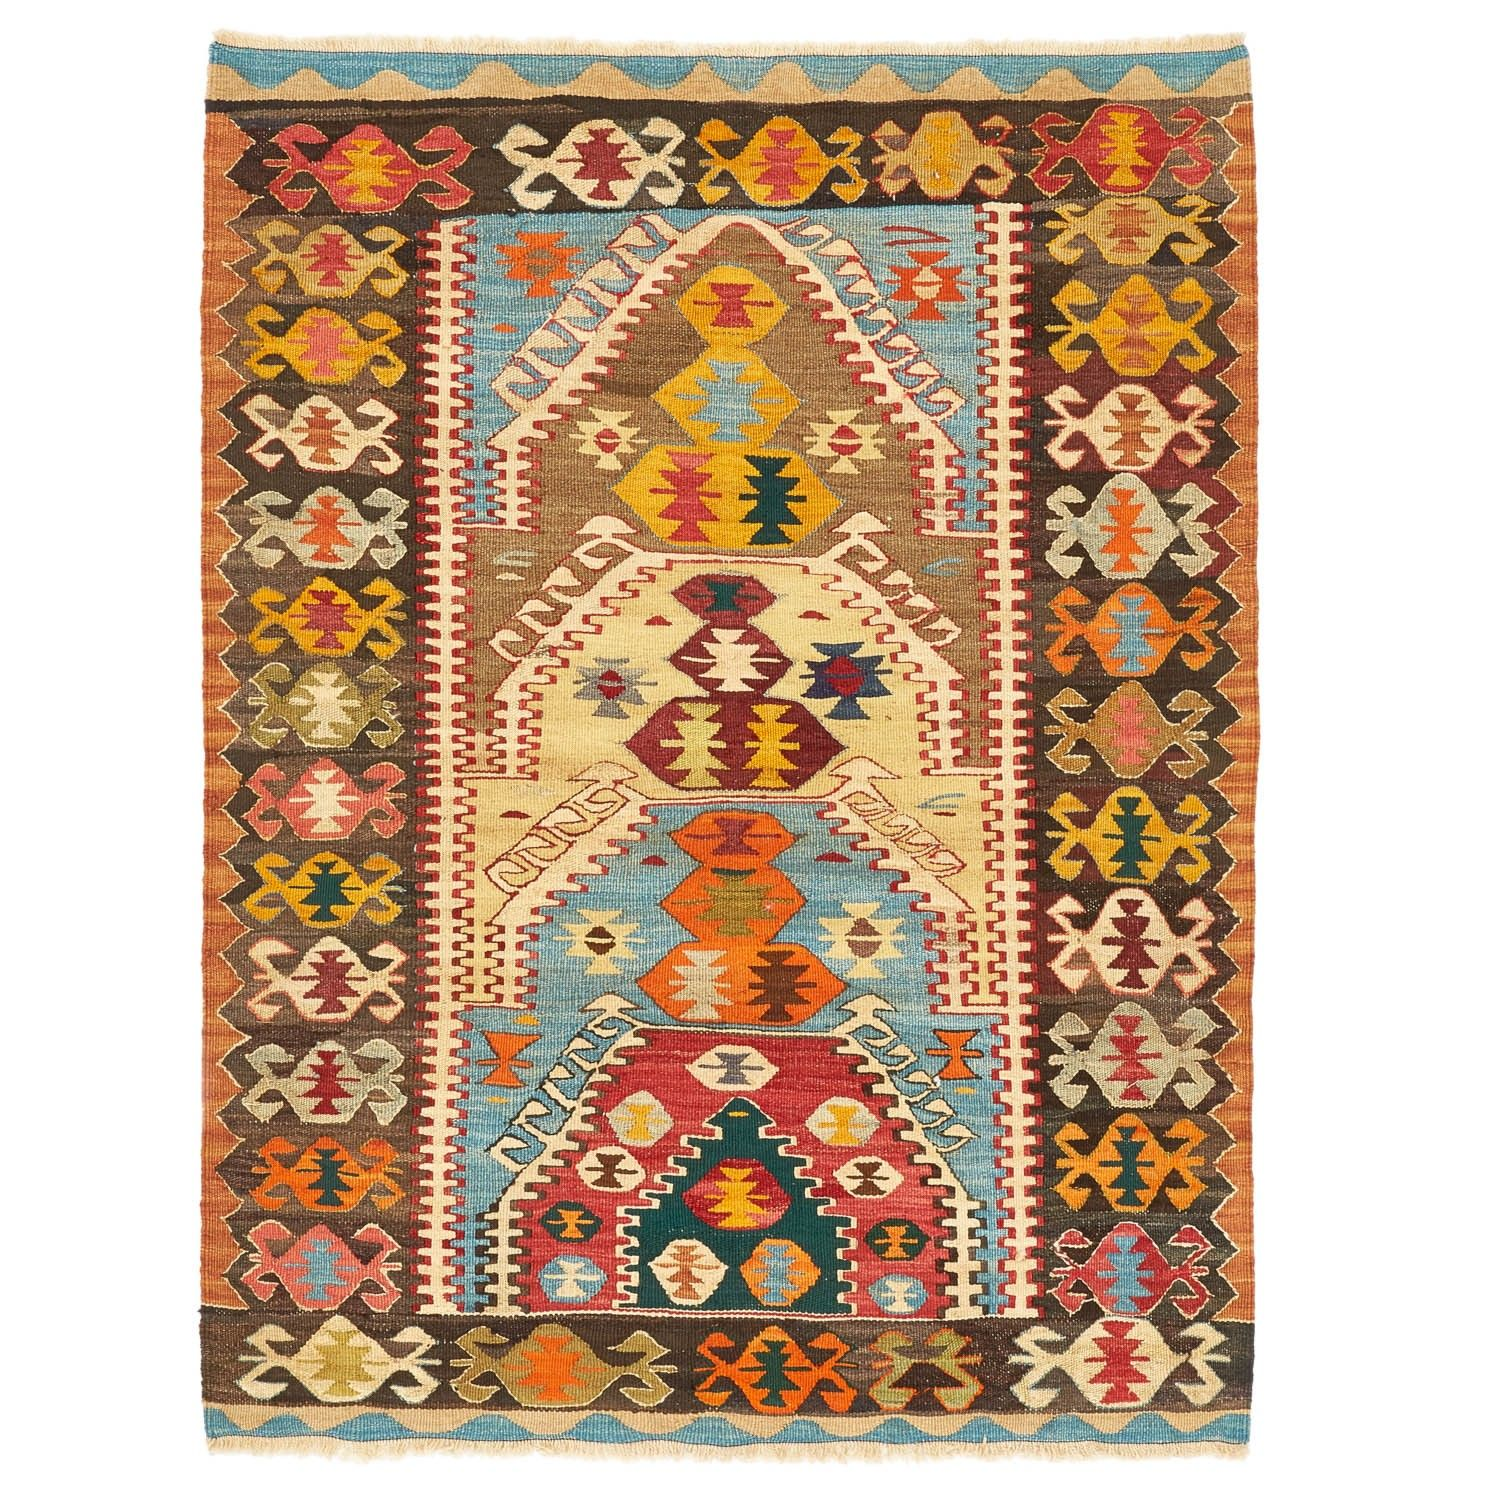 A series of nested designs creates a compelling focal point on this wool kilim, handwoven in Turkey. Crab motifs, traditional symbols found in Caucasian weaving, form a frame within the crenellated border. Culled from around the world, the carefully curated flat weave and kilim collection embodies distinctive symbolism of cultures past and present.